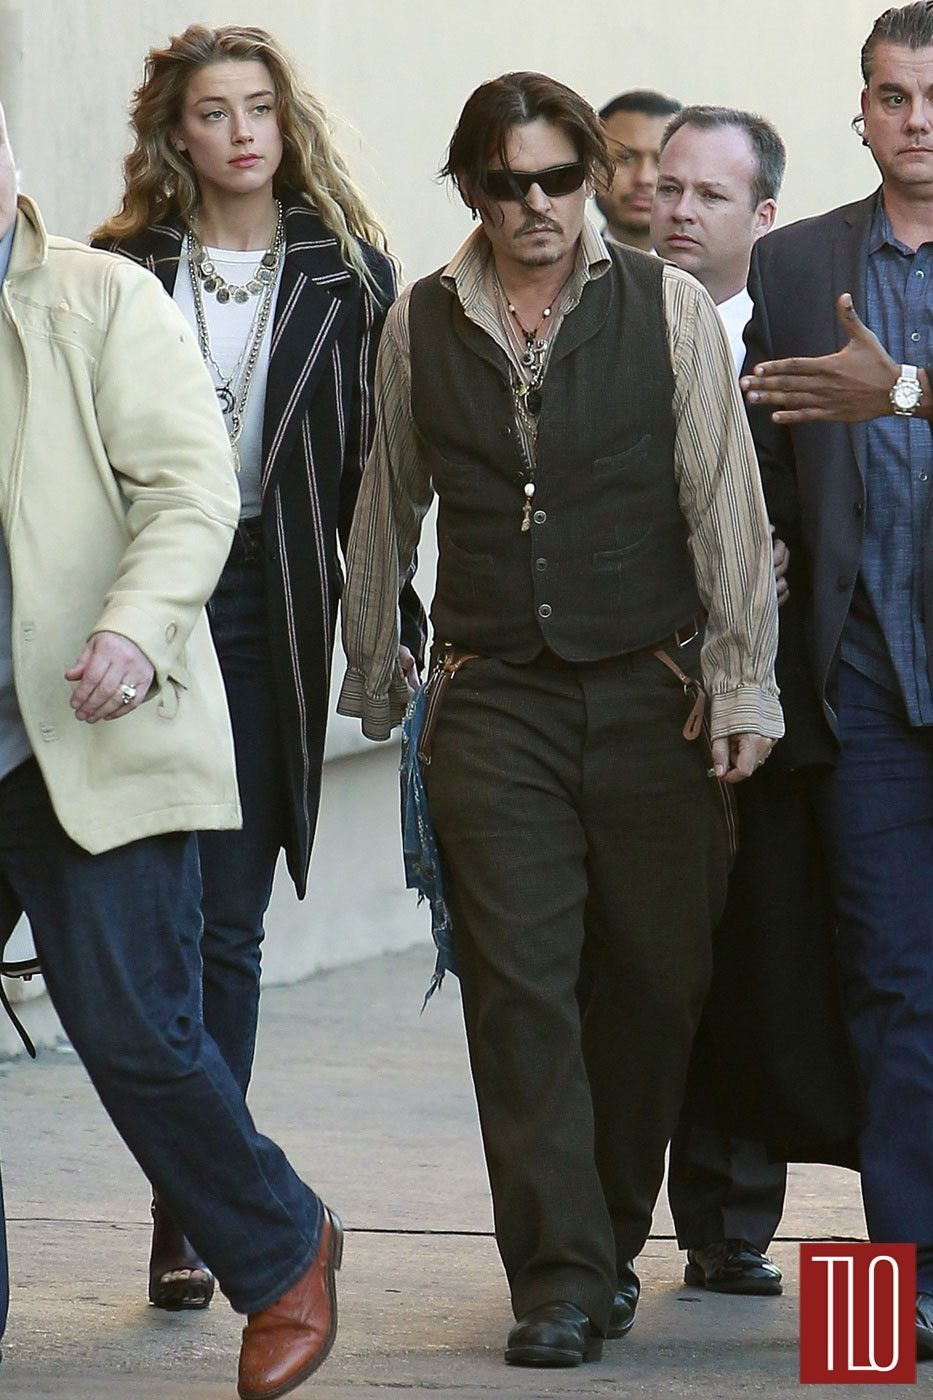 Johnny-Depp-Amber-Heard-Jimmy-Kimmel-Live-TV-Style-Fashion-Tom-Lorenzo-Site-TLO (1)